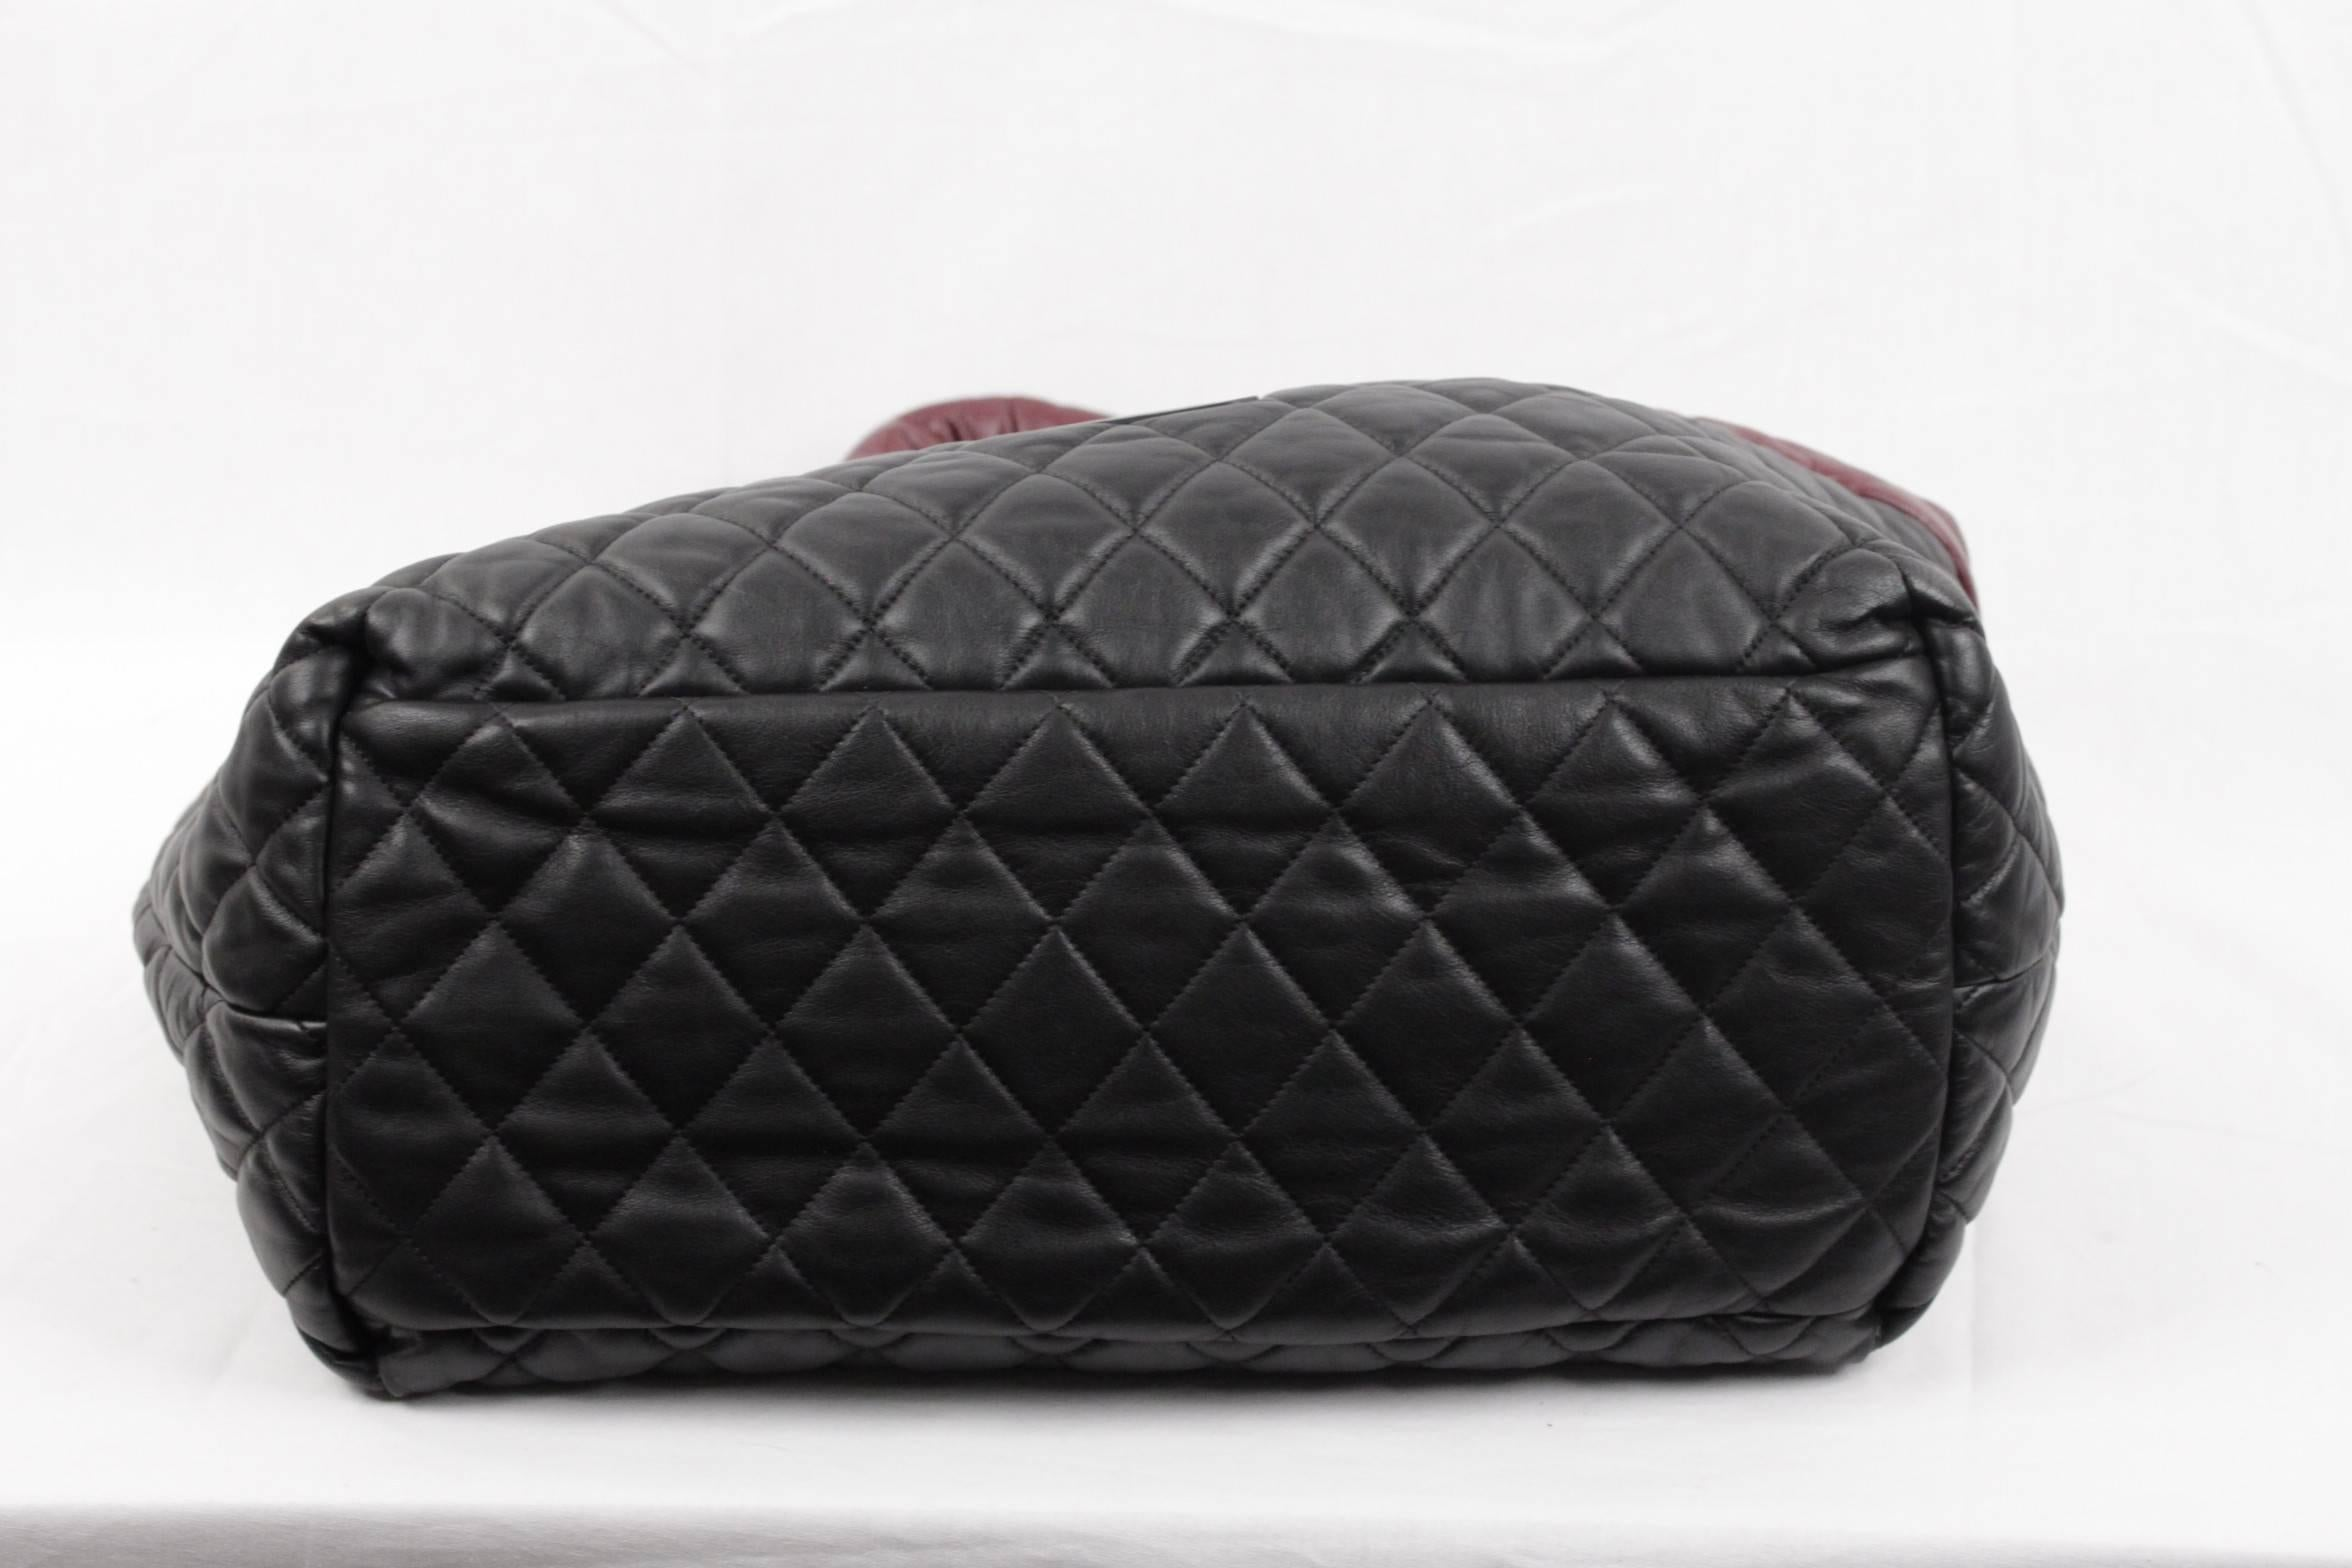 9cc9bf17e2be Chanel Black/Burgundy Reversible Leather Coco Cocoon Tote Handbag For Sale  at 1stdibs